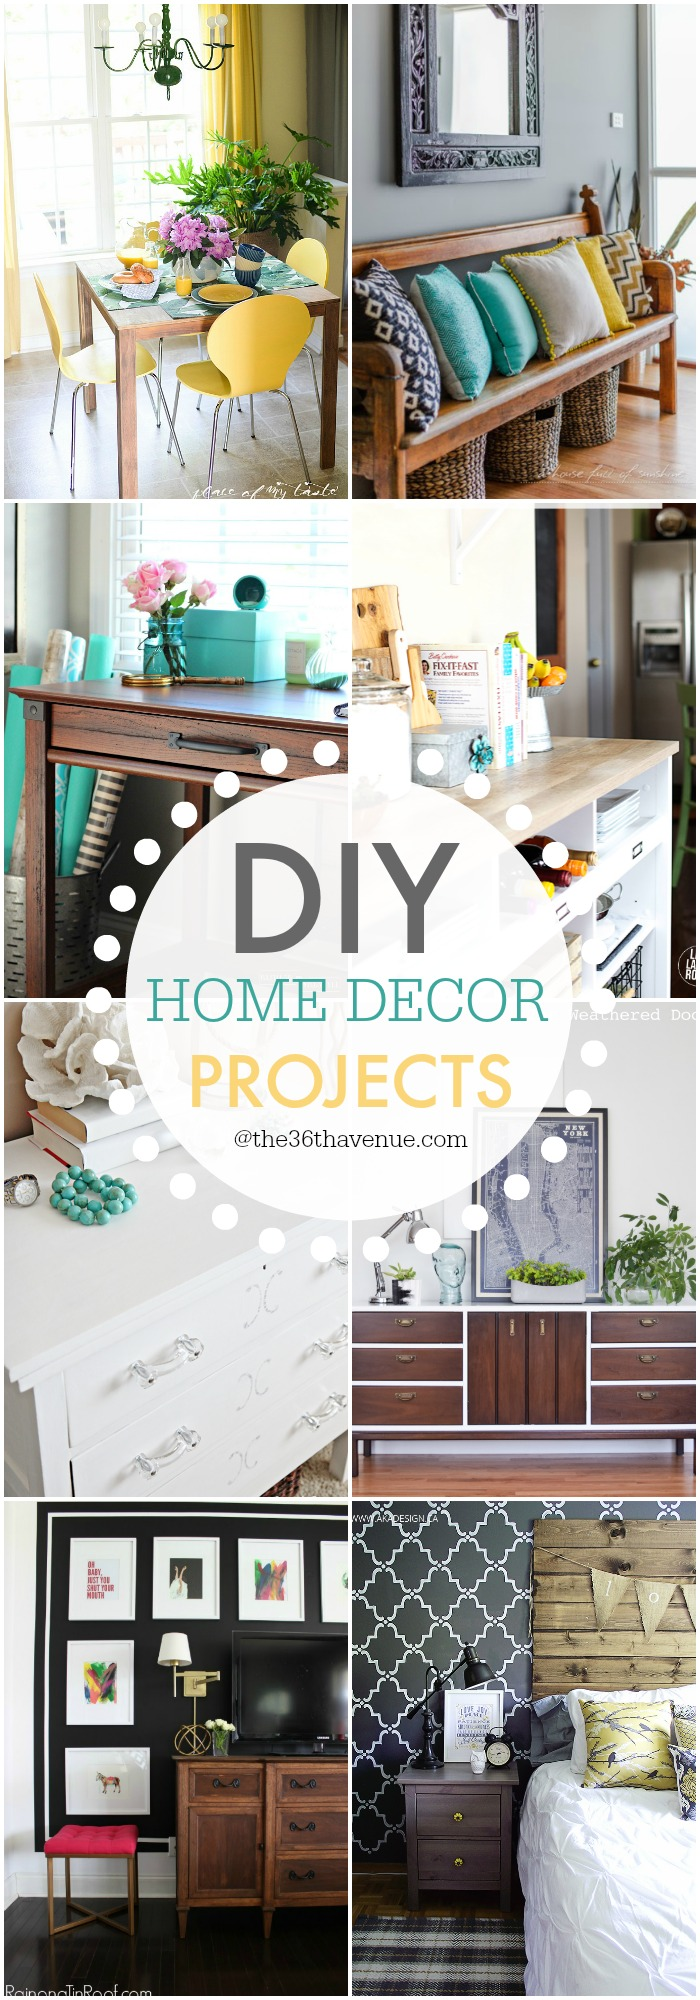 The 36th avenue diy home decor projects and ideas the for Home decor ideas at home